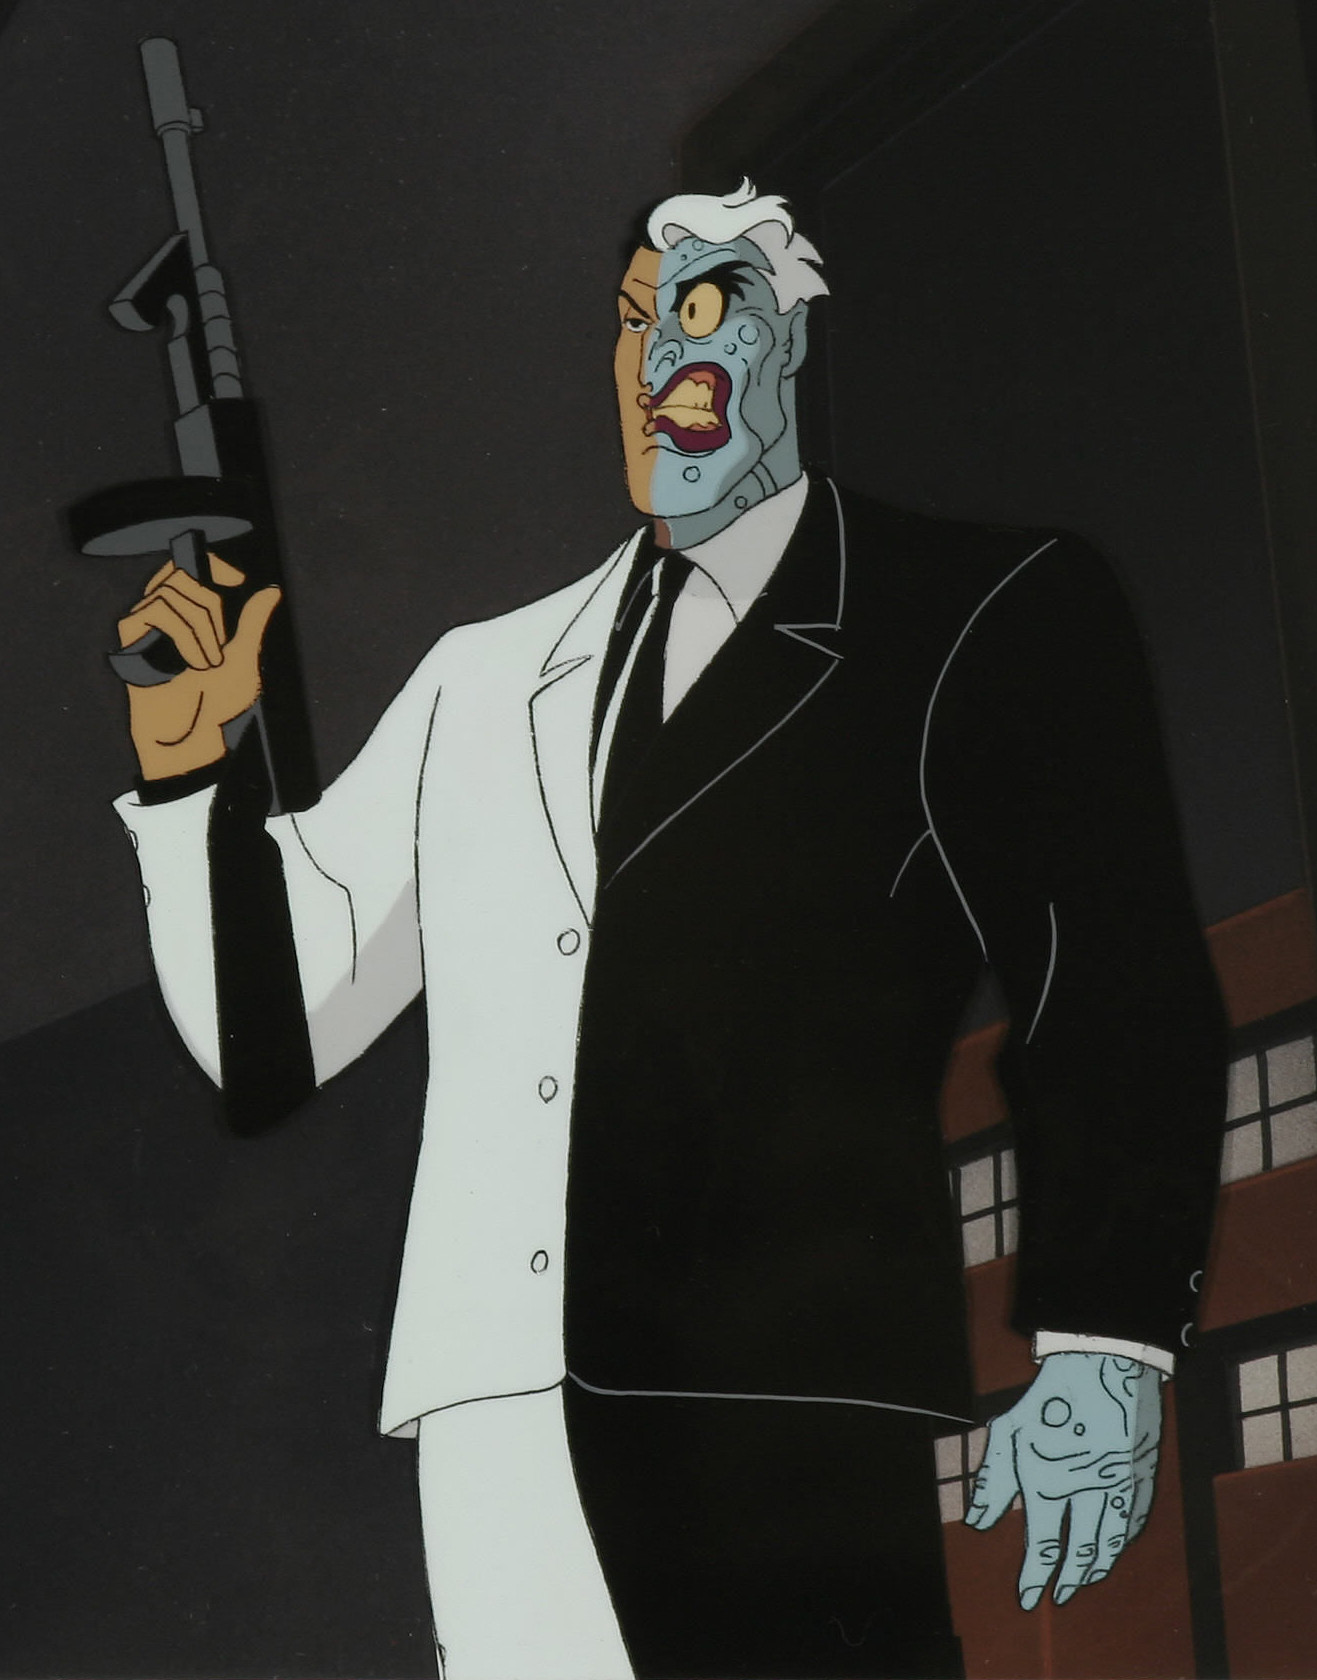 File:TWO-FACE dc animated universe.jpg